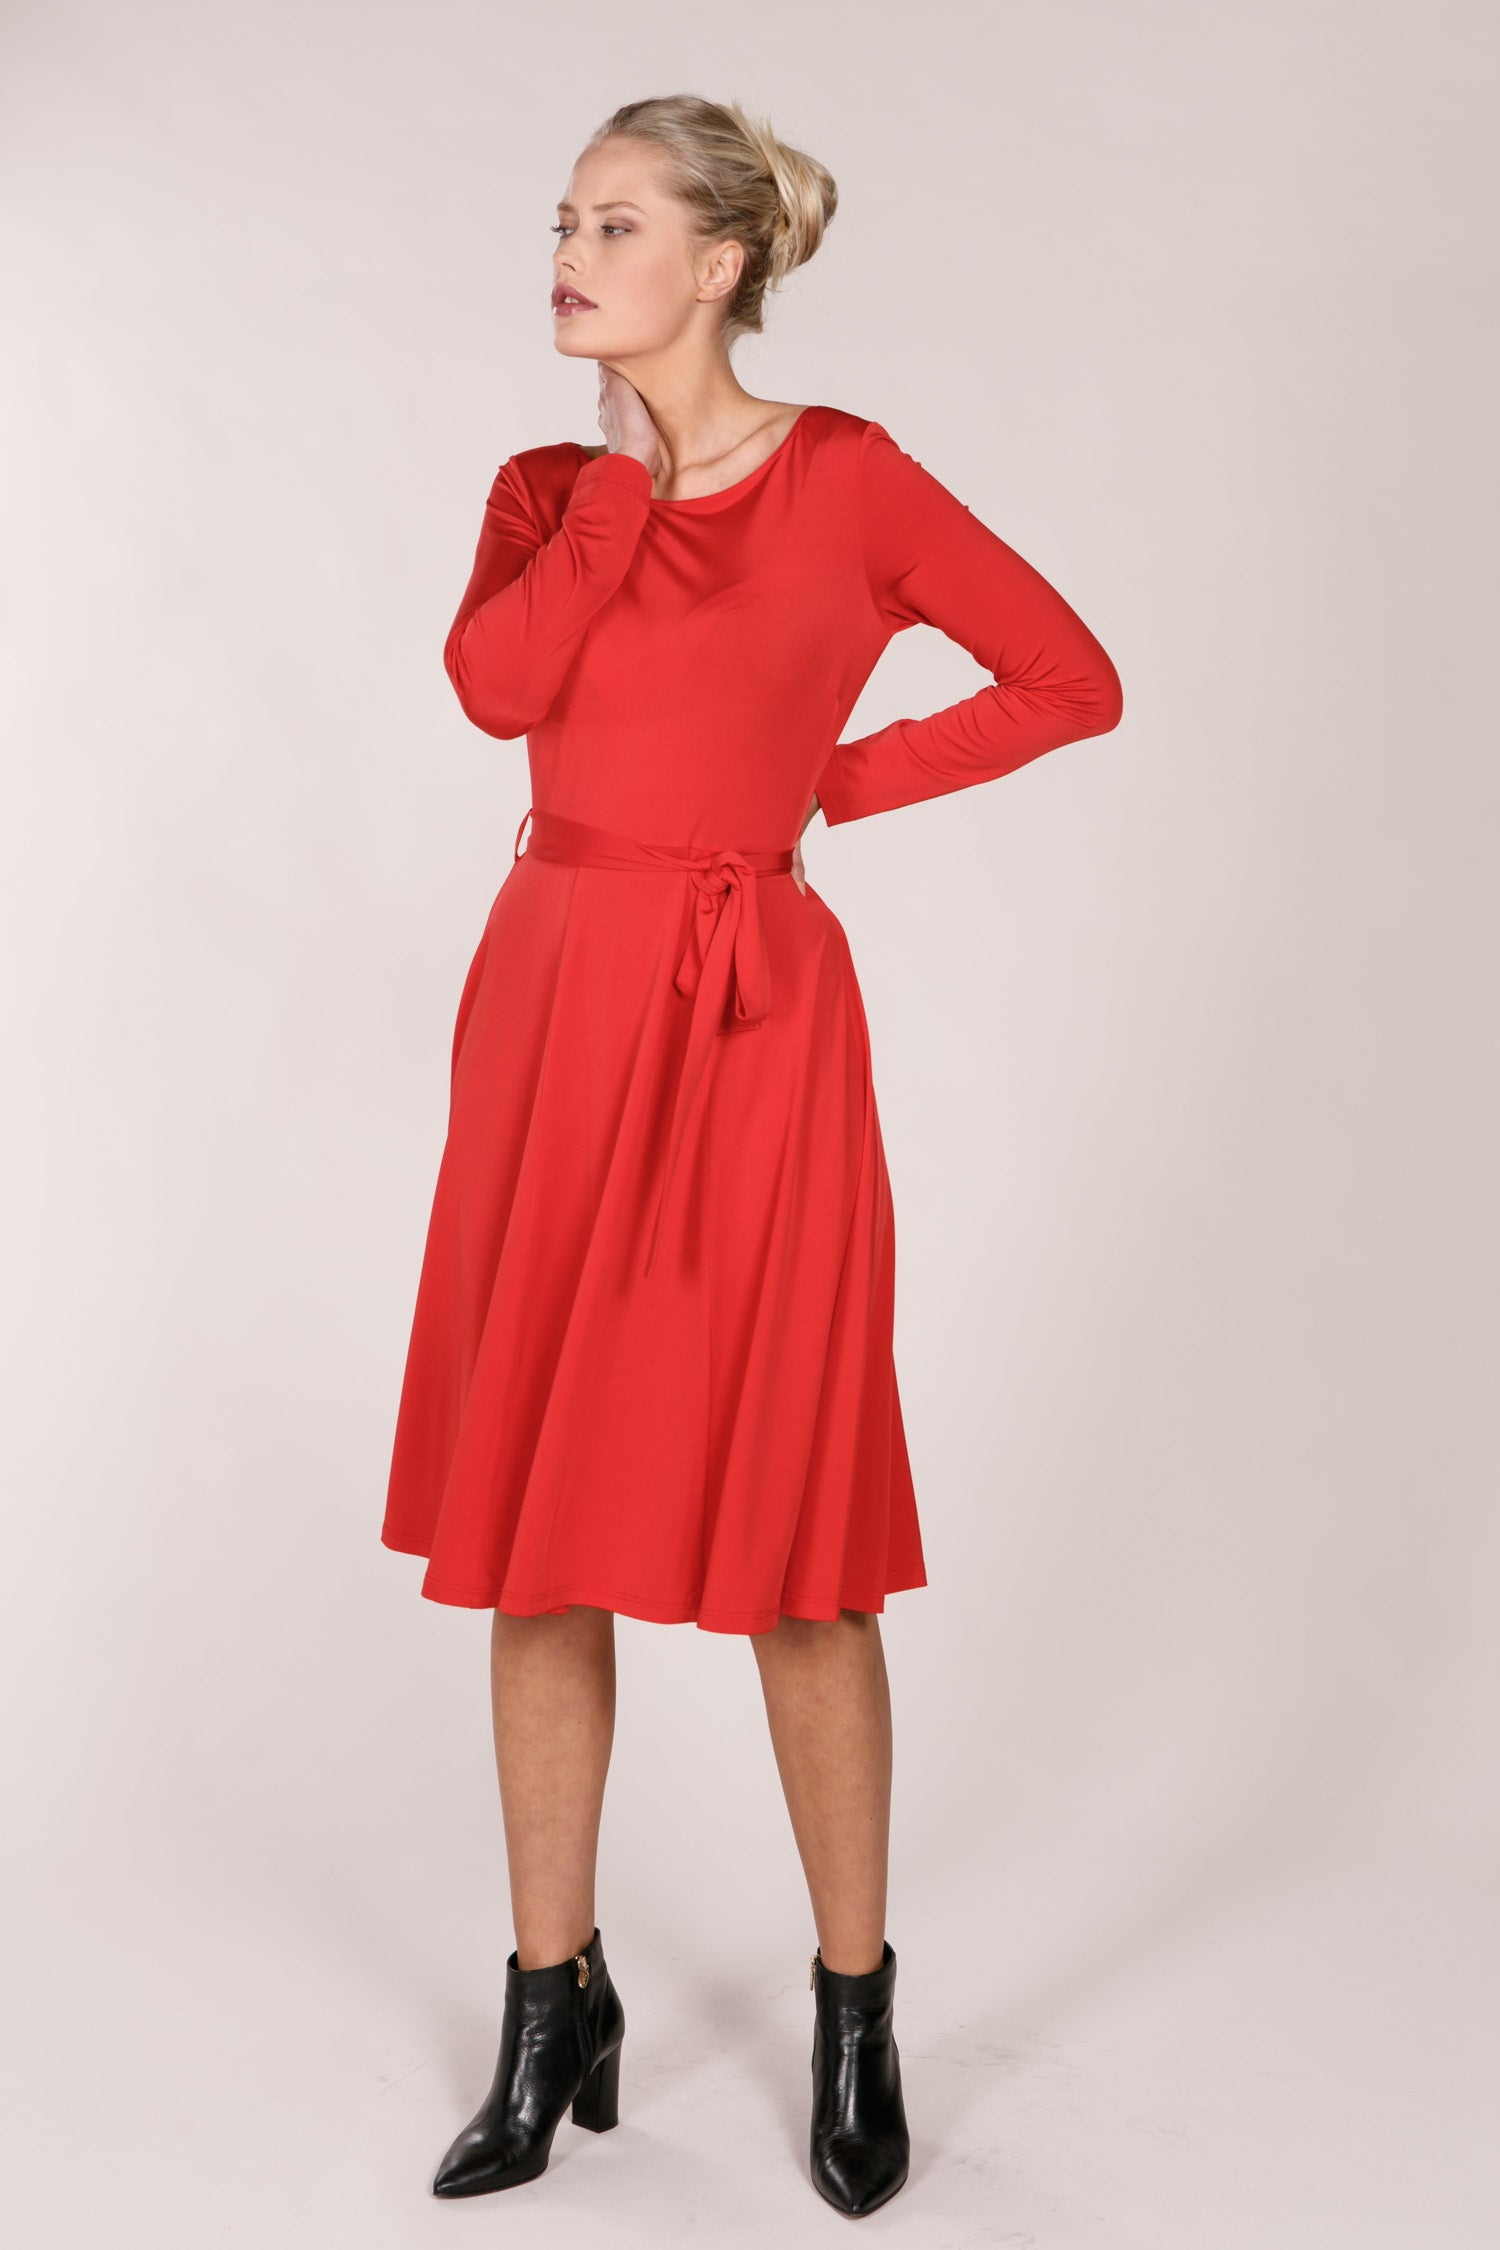 Paris dress - Red